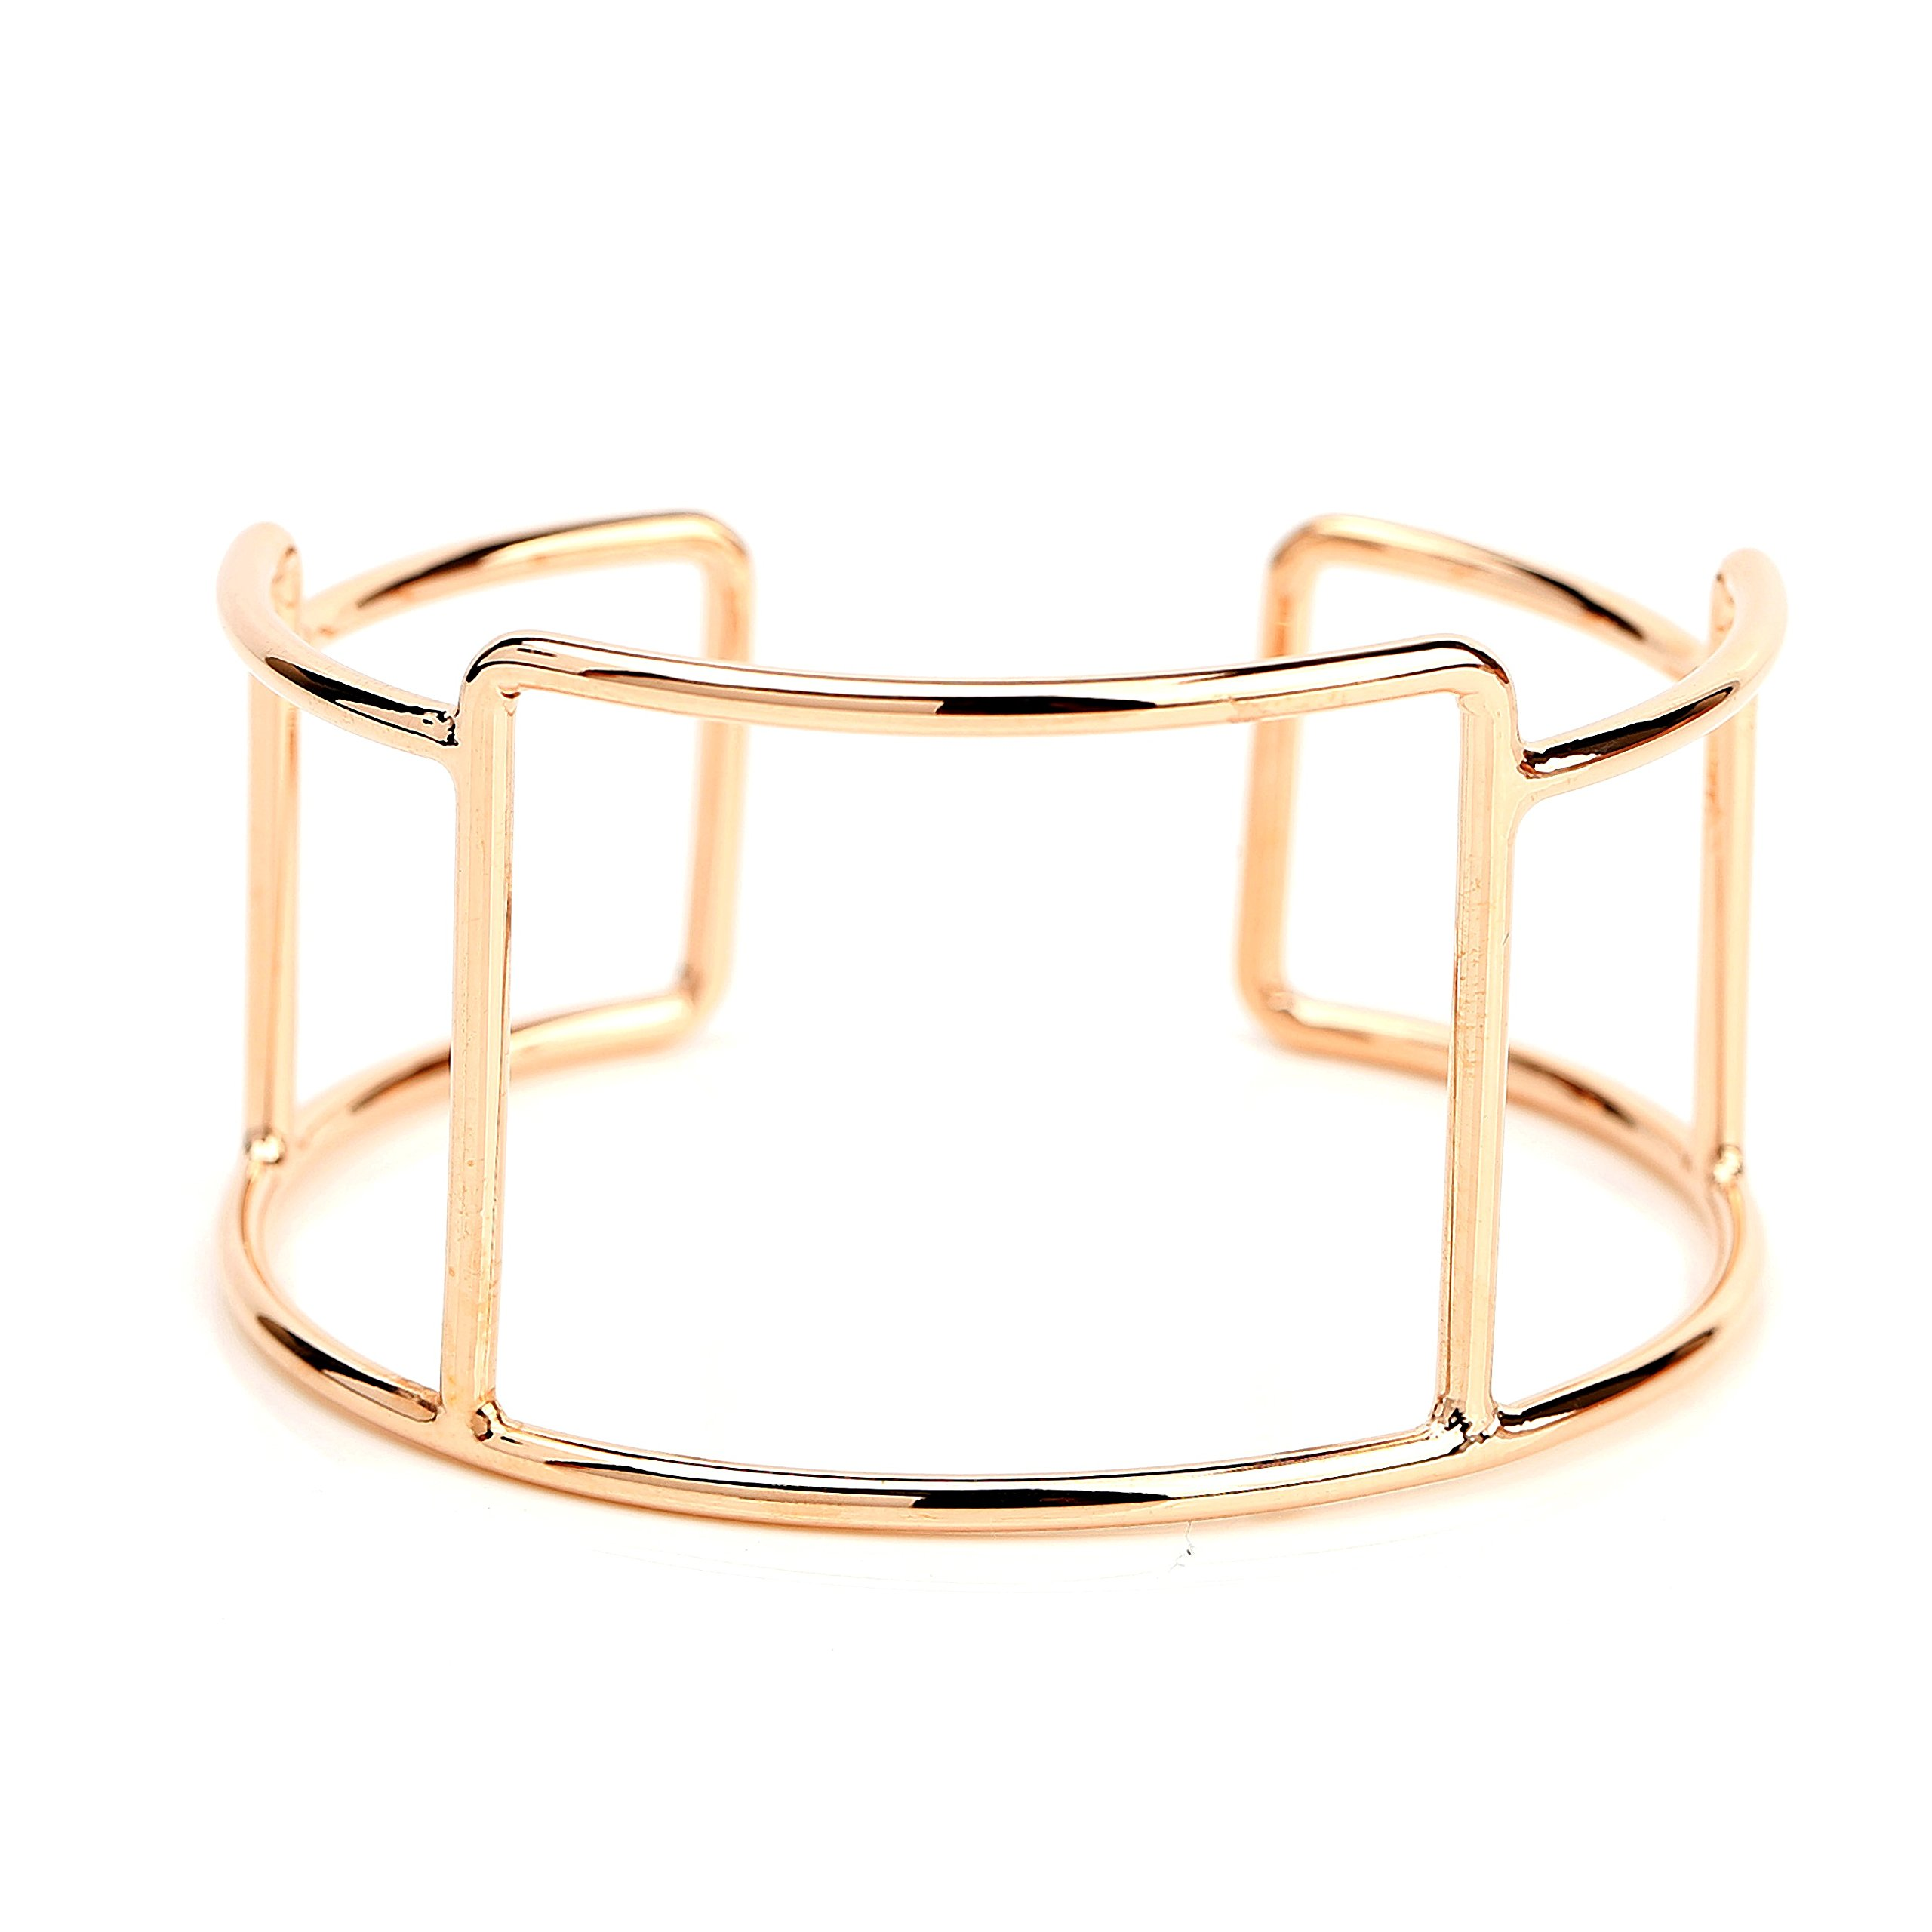 Stylish Designer Bangle Bracelet Cuff with Contemporary Geometric Design